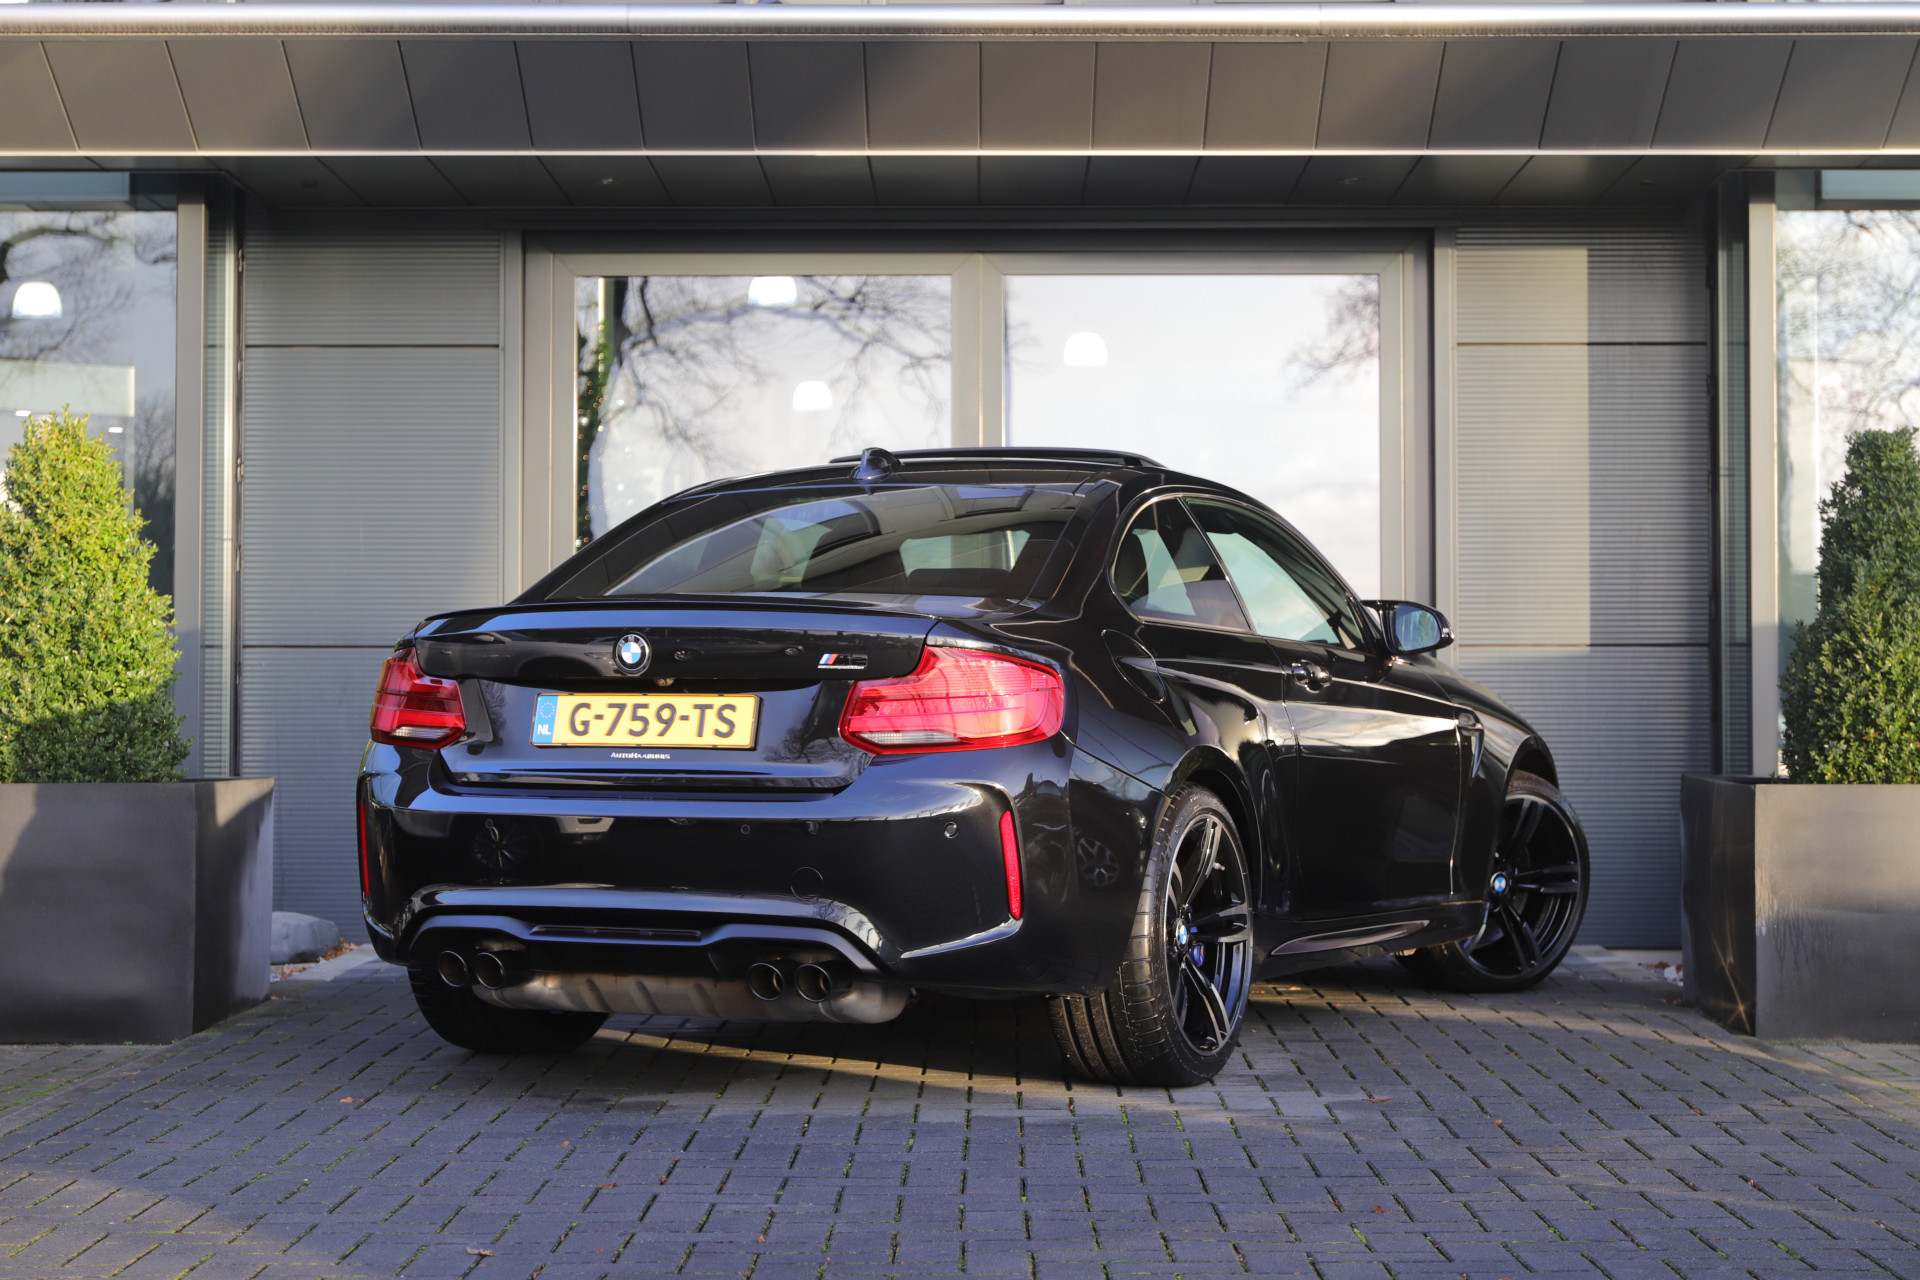 Droom Occasion: Pijlsnelle Tweedehands BMW M2 Competition